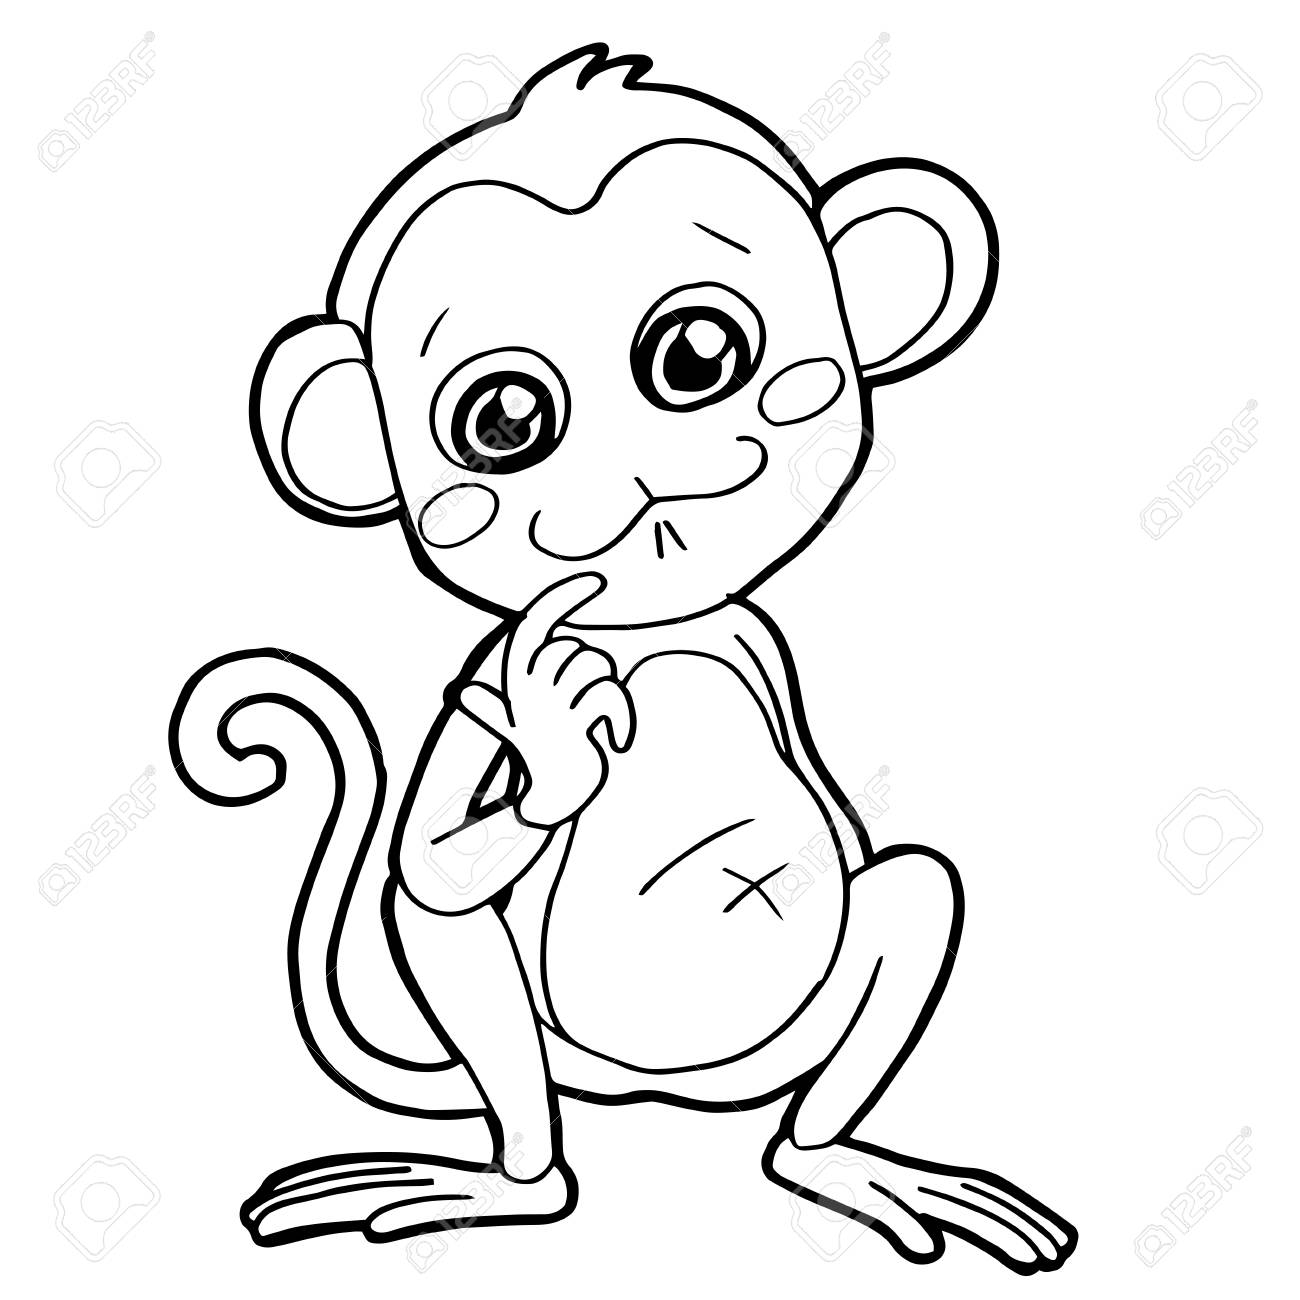 Cartoon Cute Monkey Coloring Page Vector Illustration Royalty Free ...